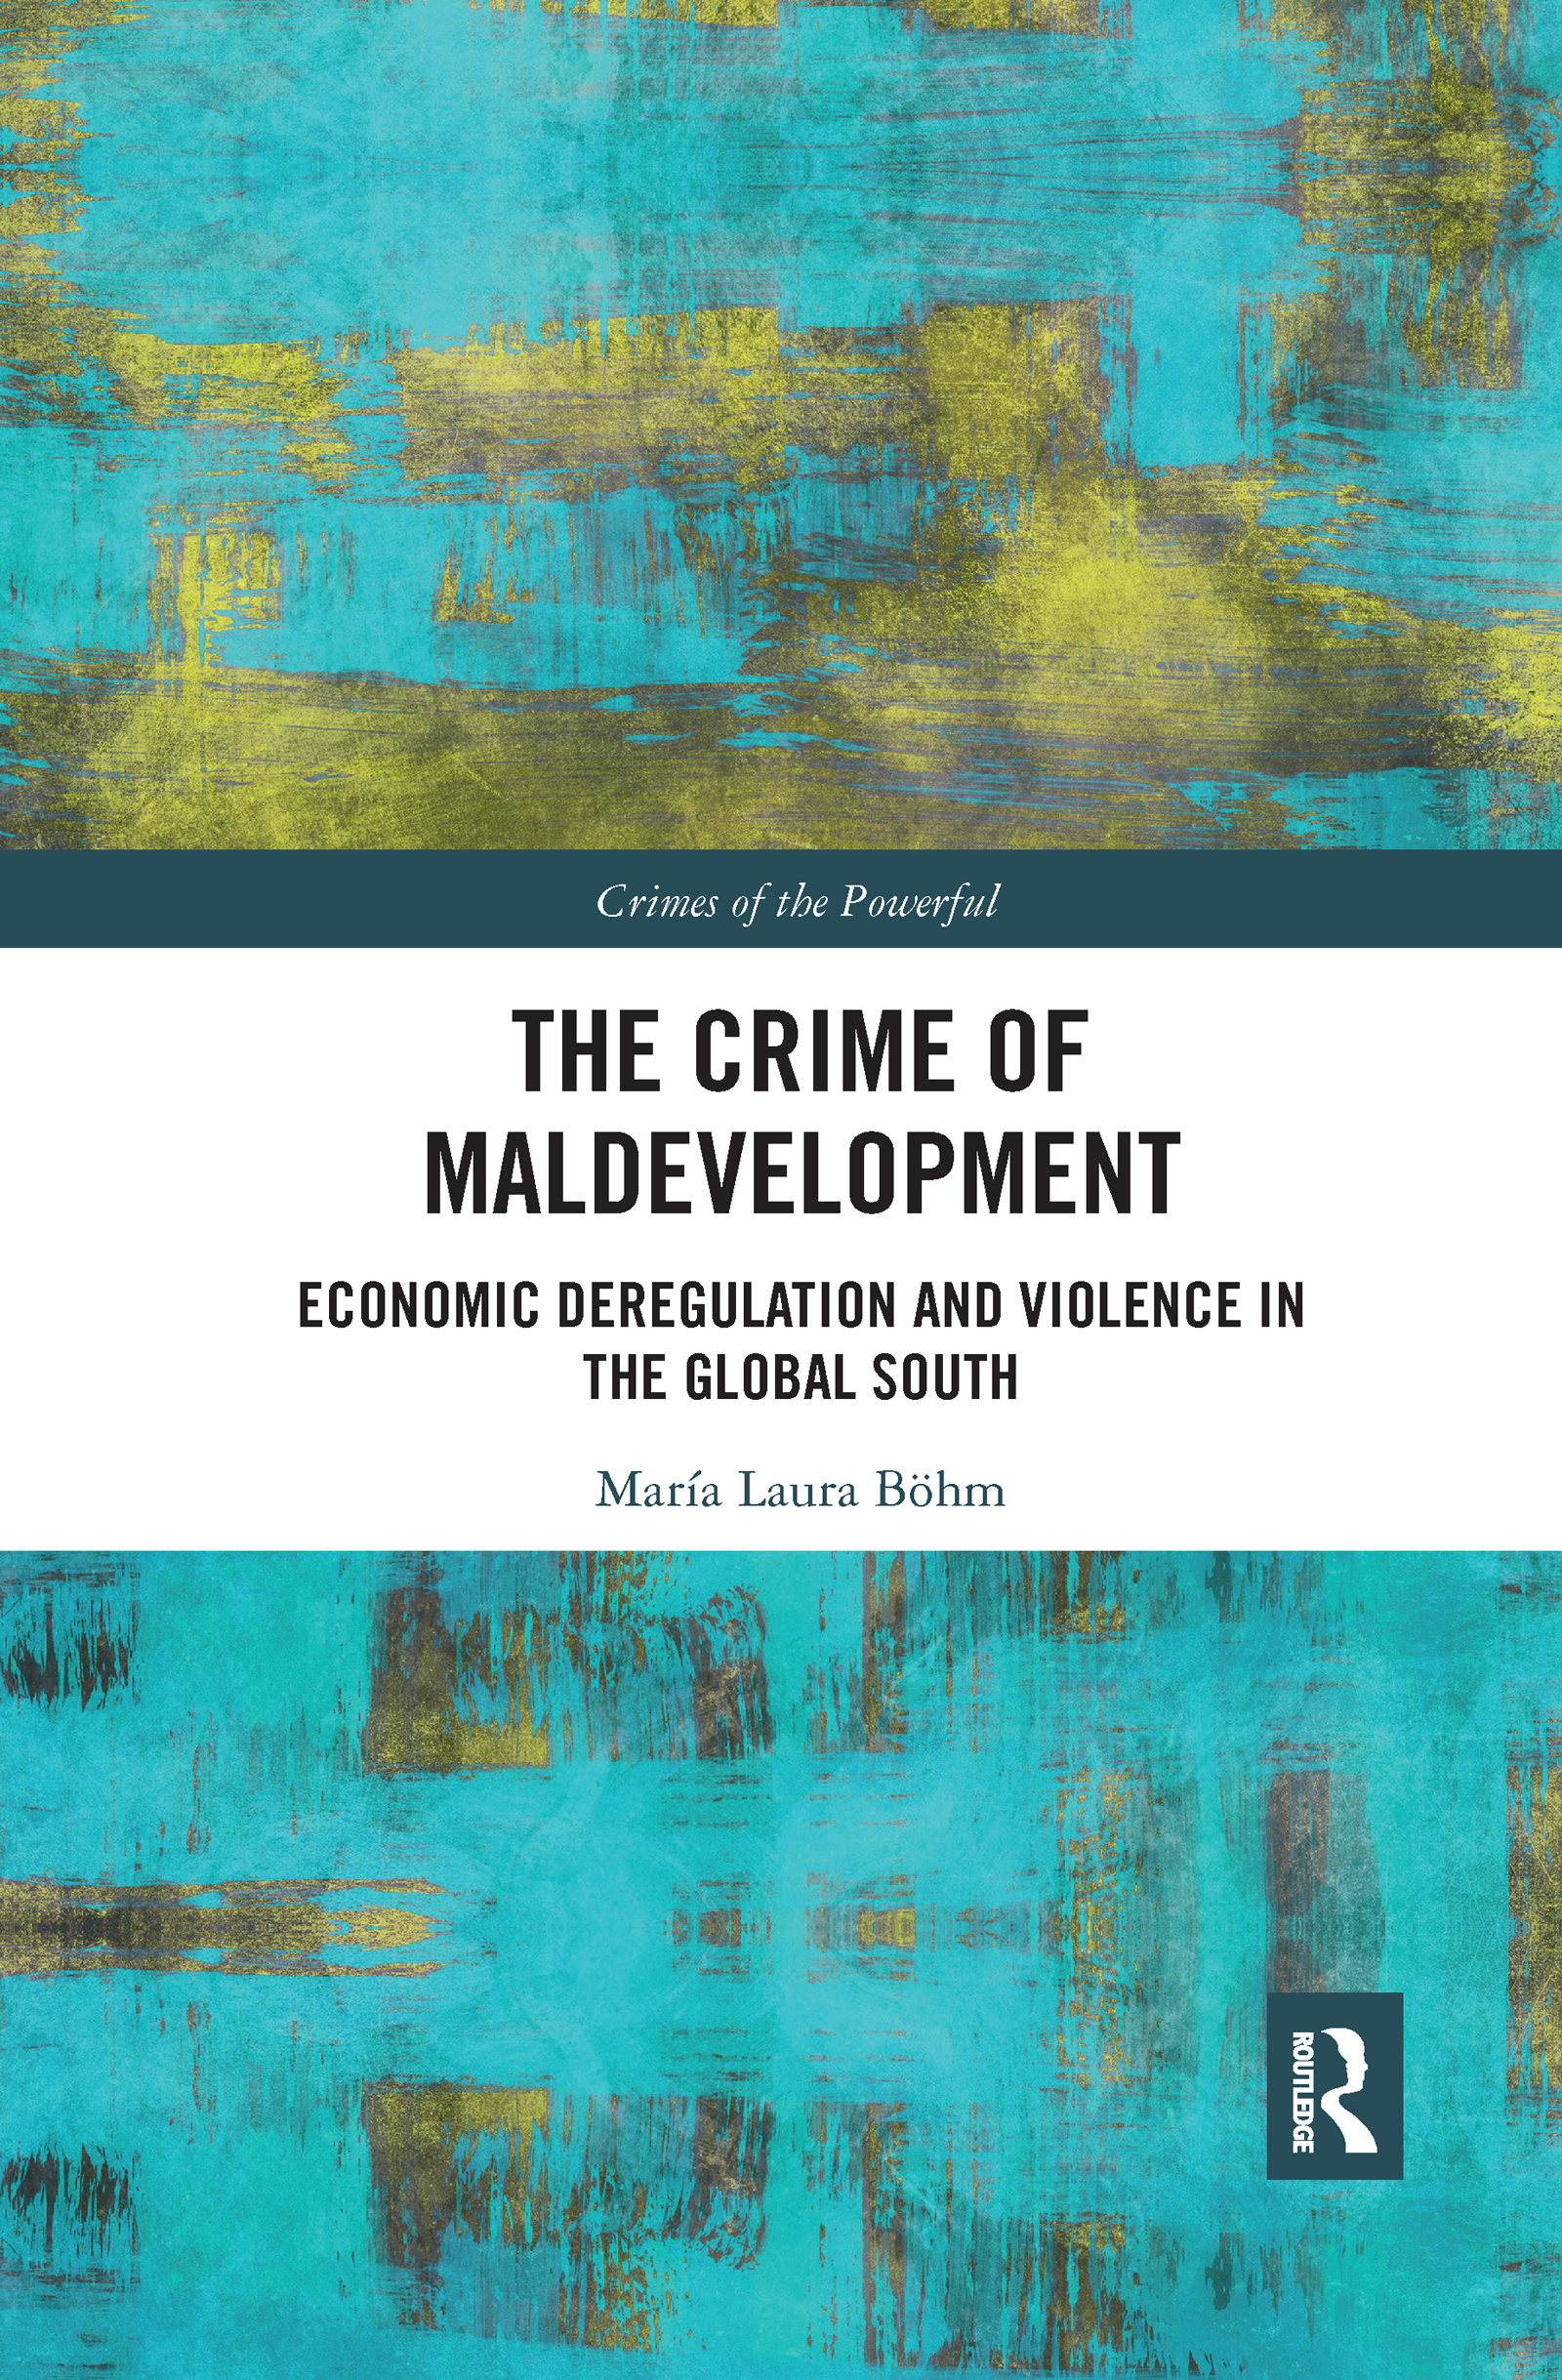 The Crime of Maldevelopment